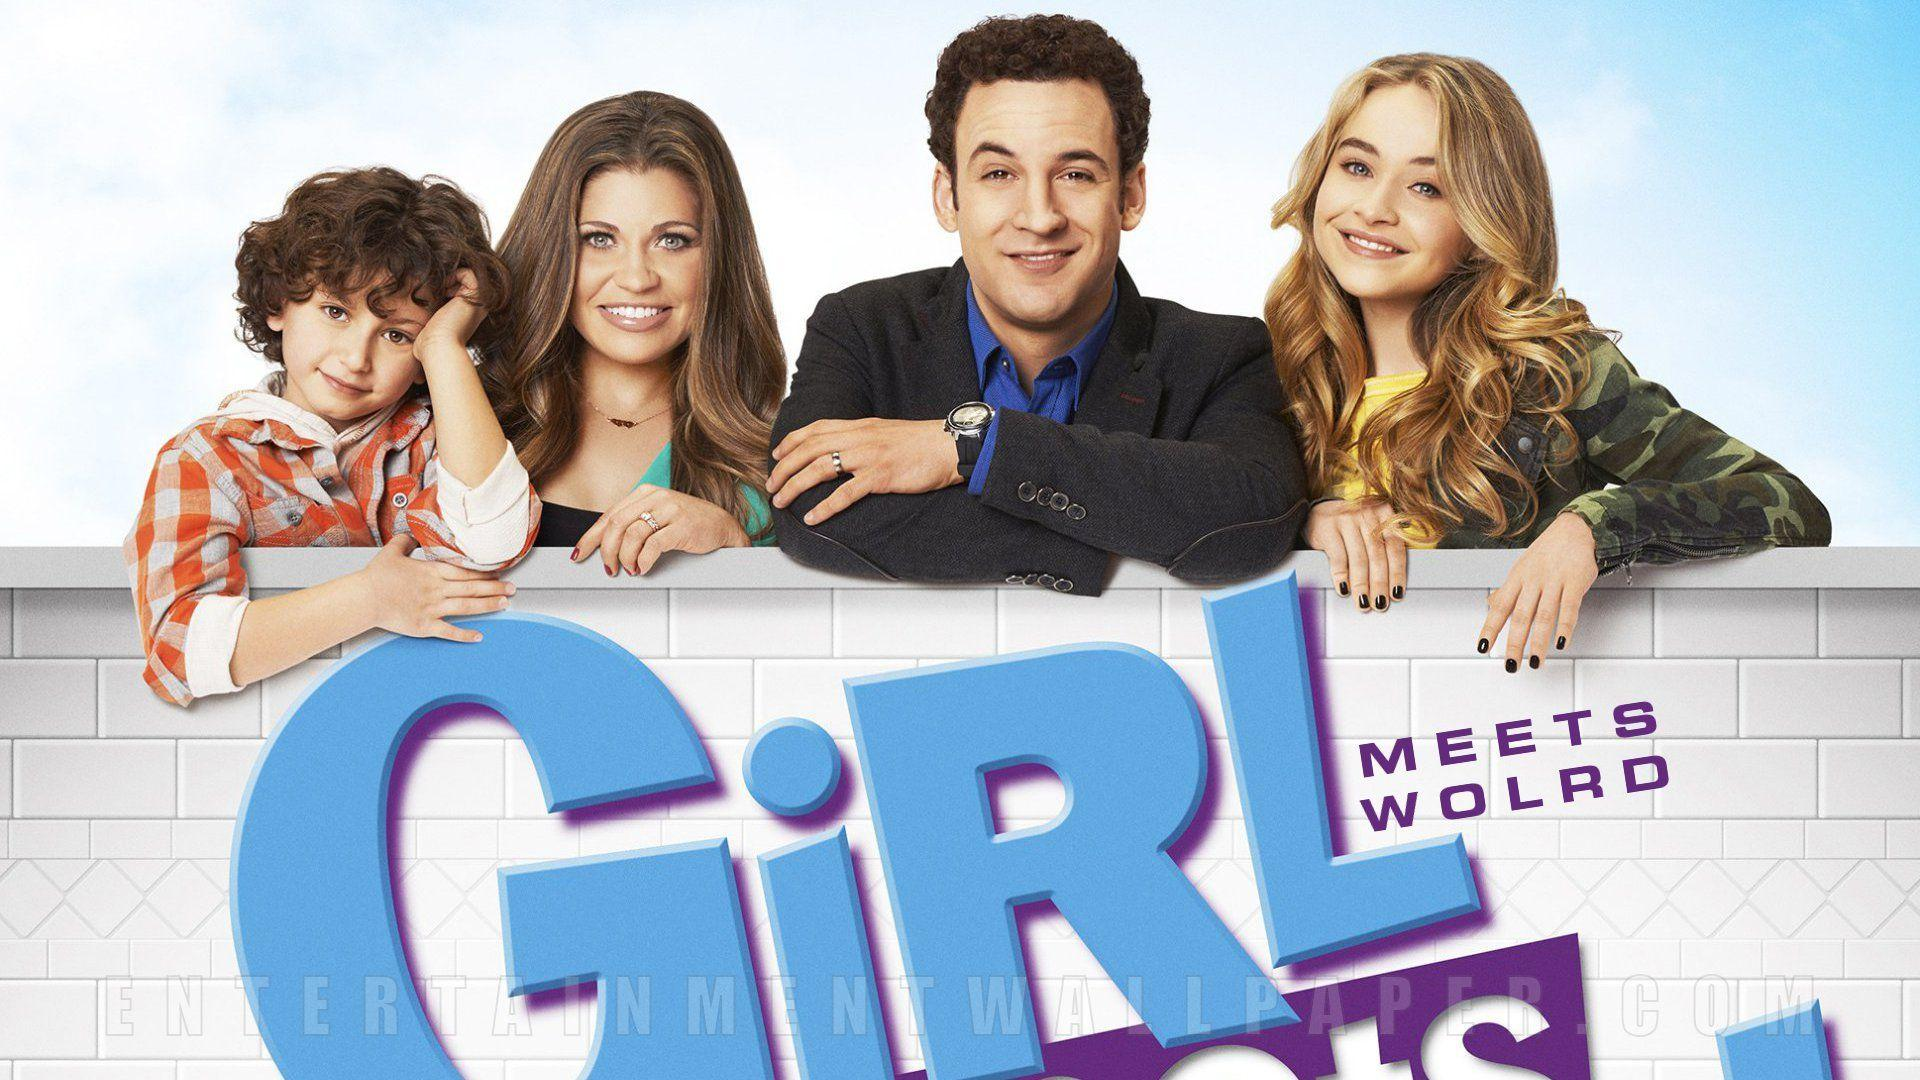 Girl Meets World Background 8